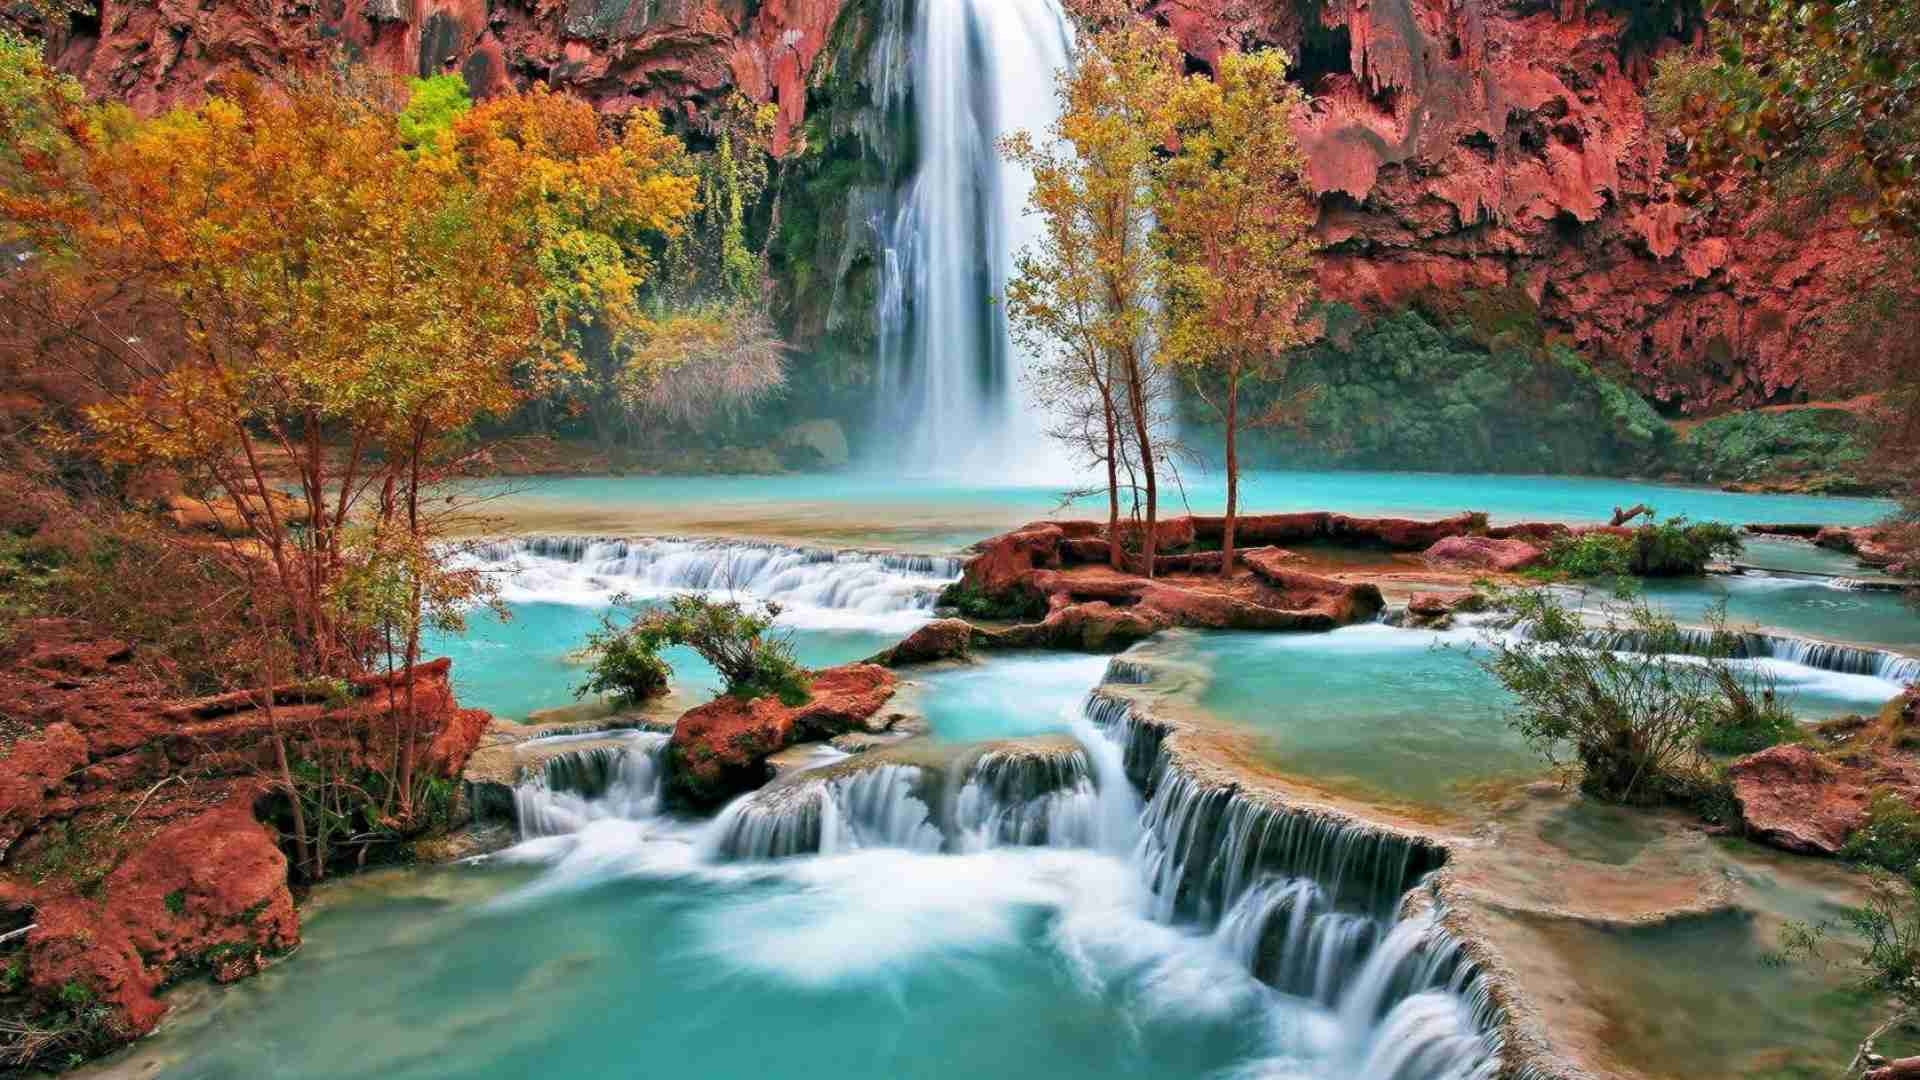 Free autumn wallpaper featuring a waterfall and river surrounded by trees with changing leaves.